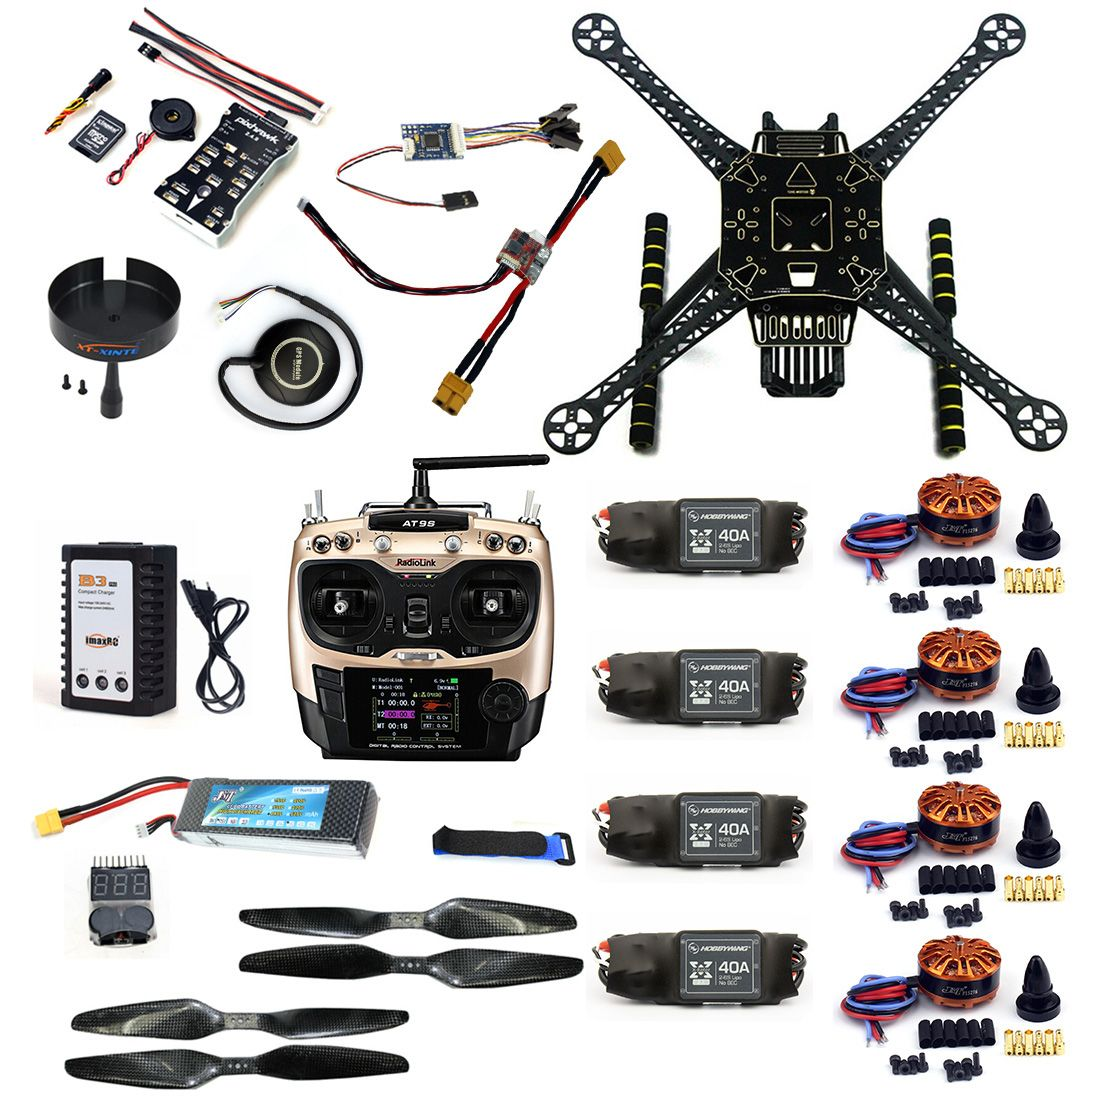 F19457-C DIY RC Drone Full Kit S600 Frame PIX 2.4.8 Flight Control 40A ESC 700KV Motor AT9S TX with Battery Charger XT60 Plug